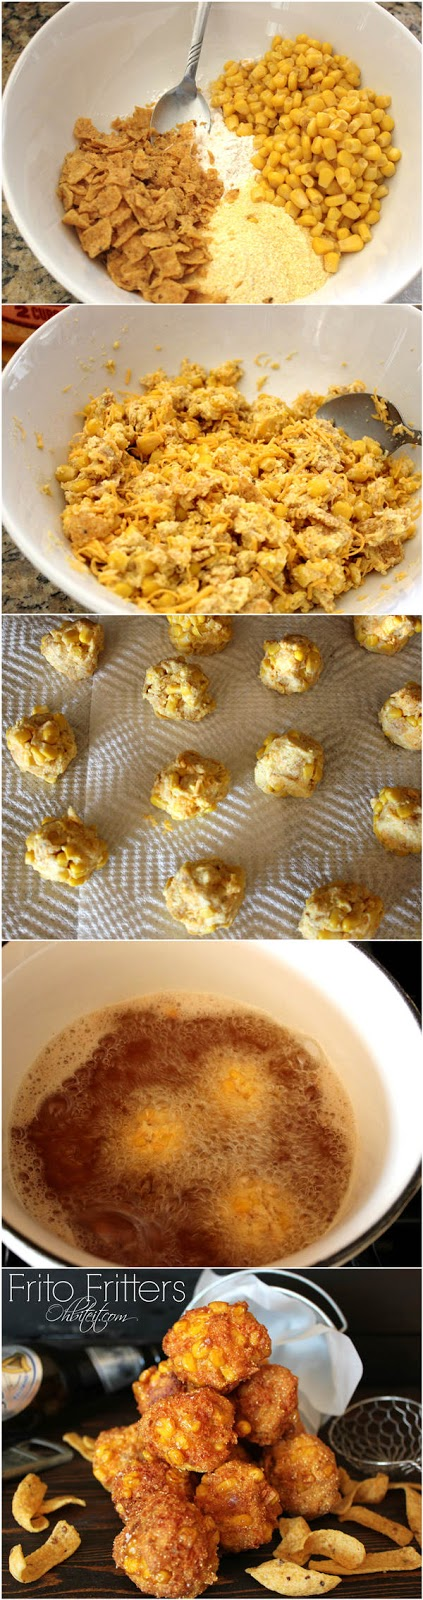 Normal Recipe: Frito Fritters